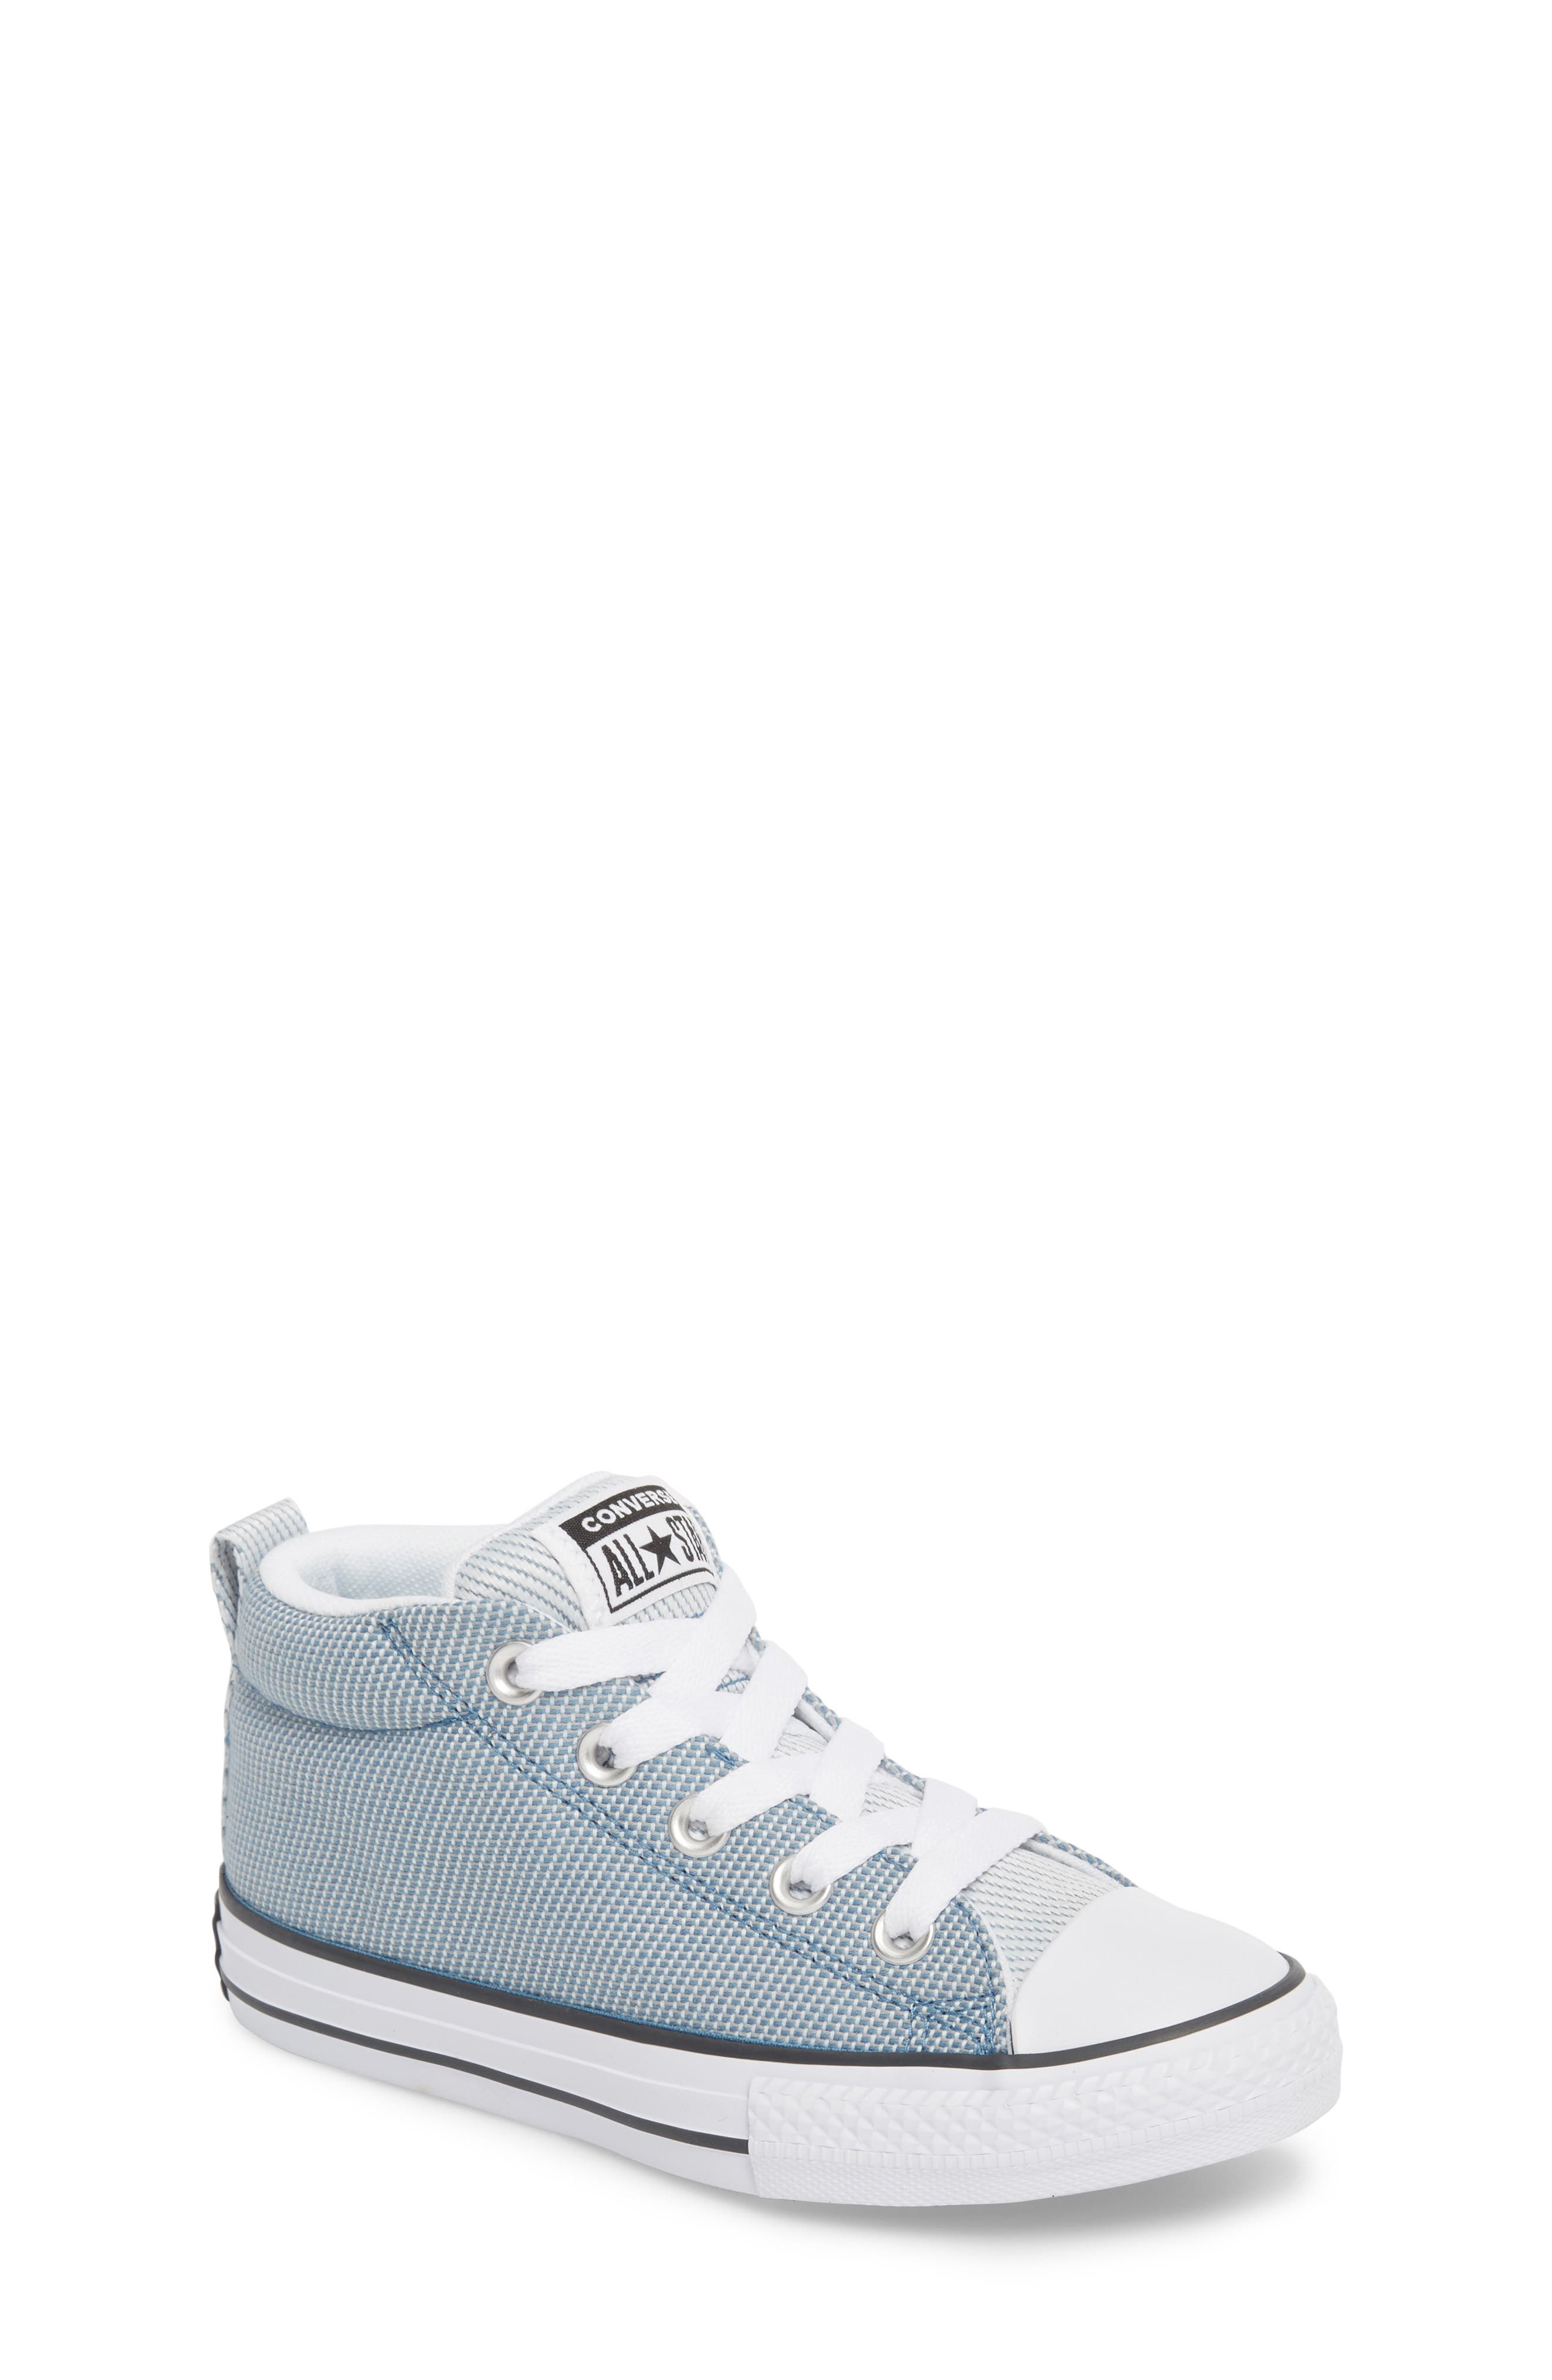 Chuck Taylor<sup>®</sup> All Star<sup>®</sup> Woven Street Mid Sneaker,                         Main,                         color, Aegean Storm